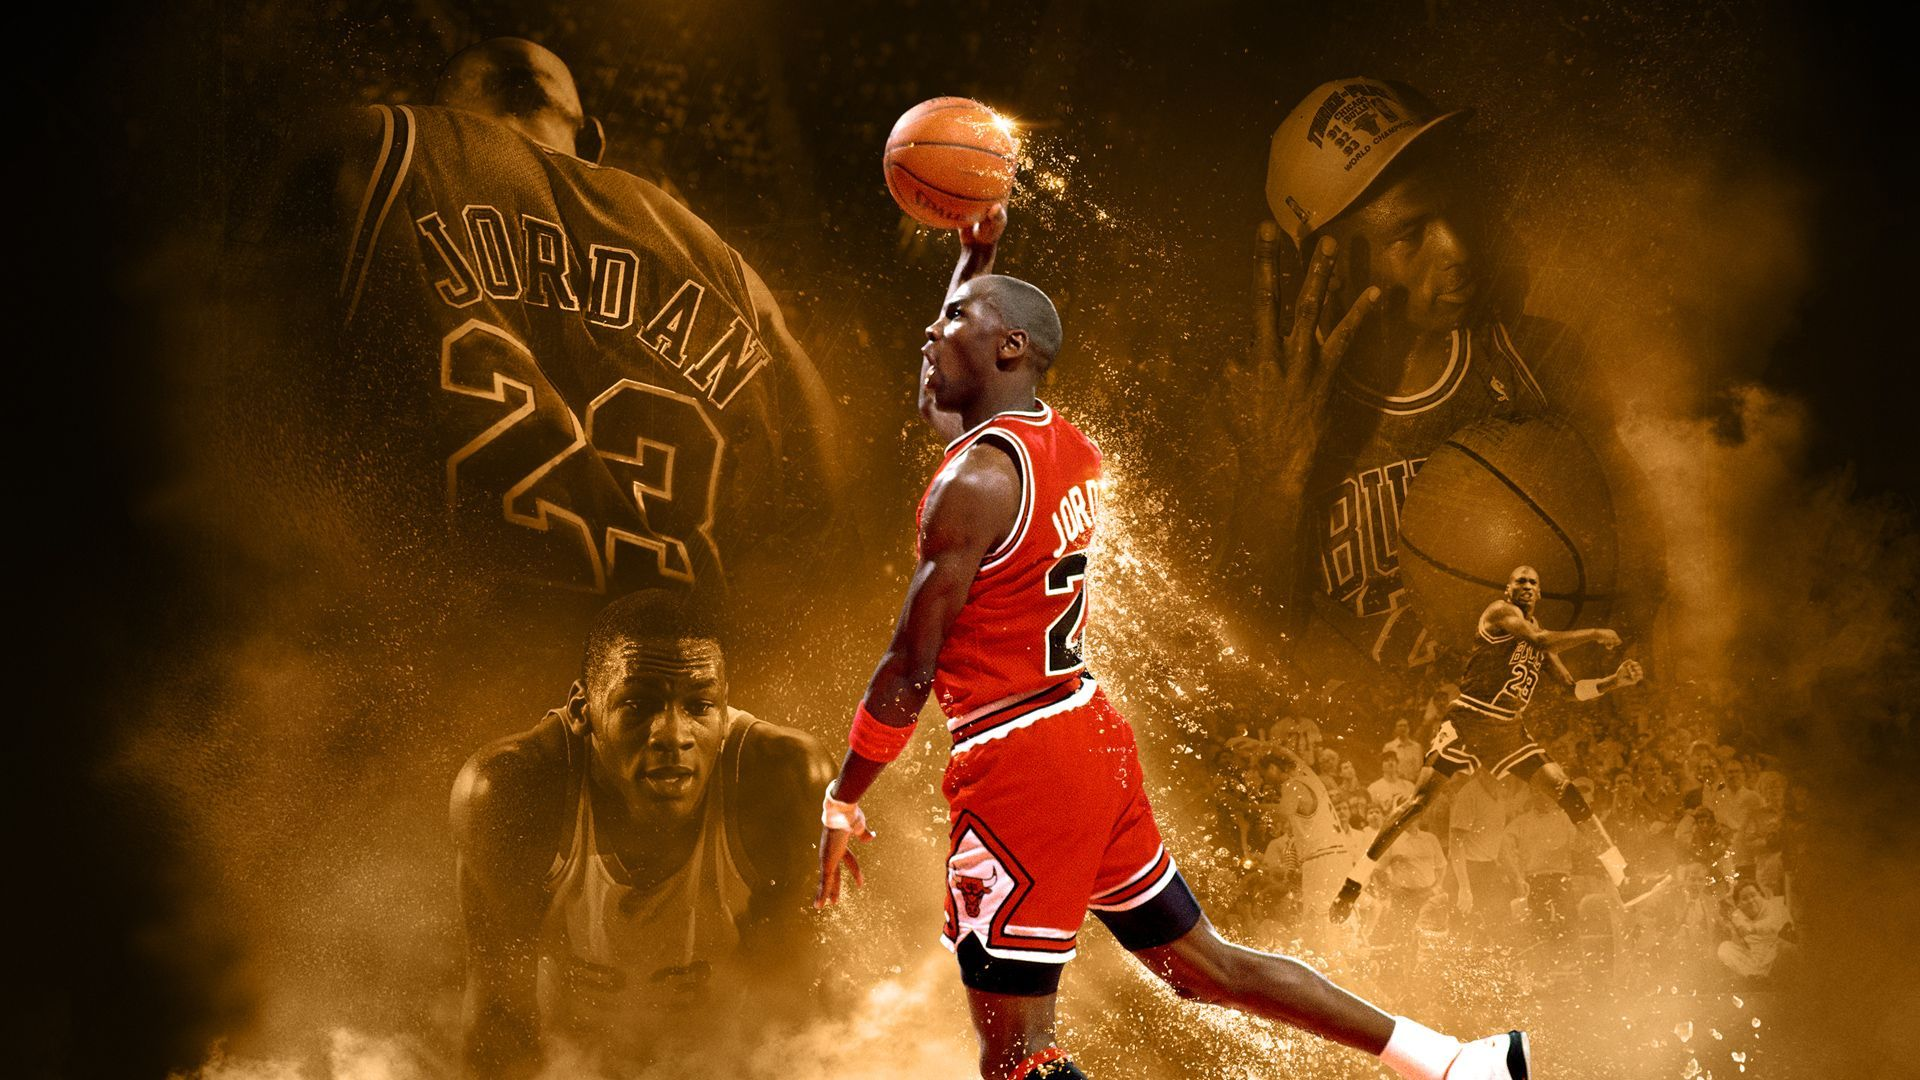 Hd wallpaper nba - Nba Wallpapers Wallpaper